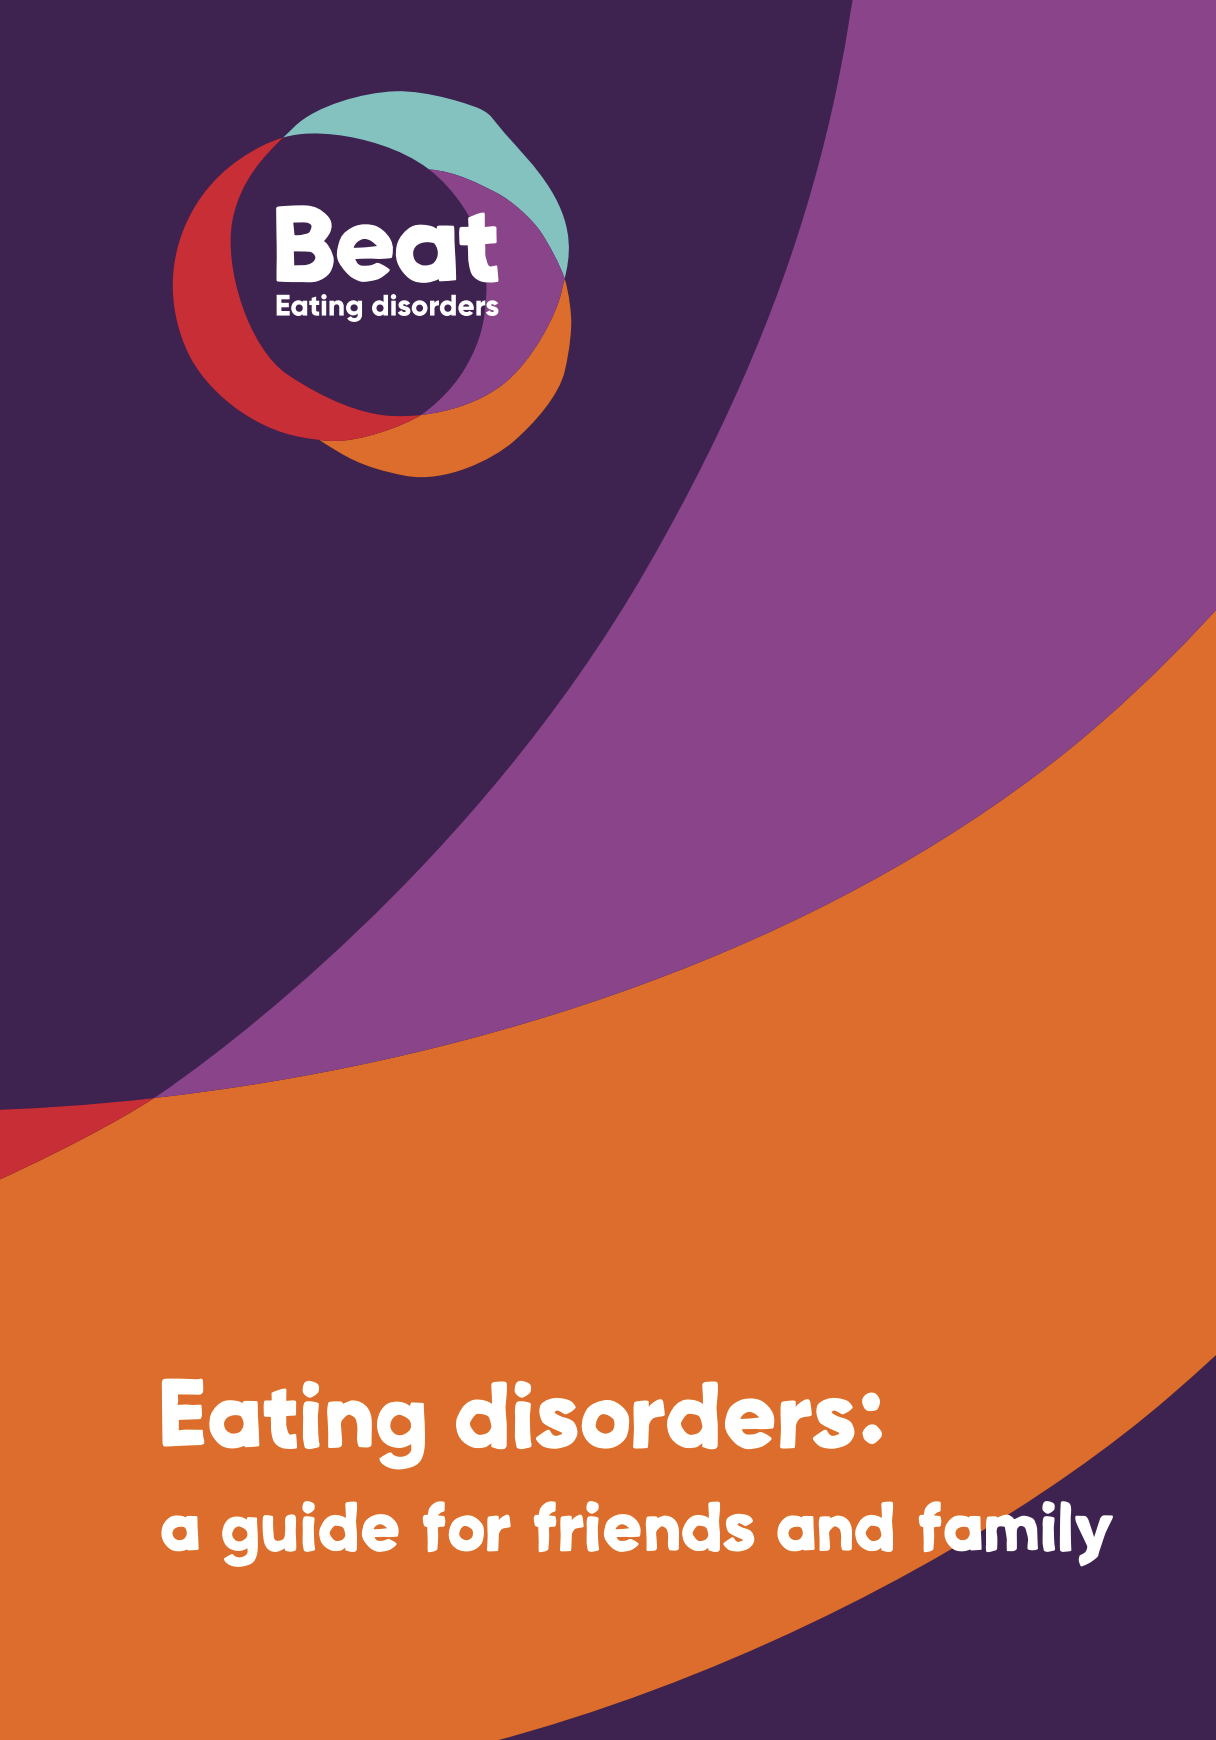 Beat eating disorders guide cover